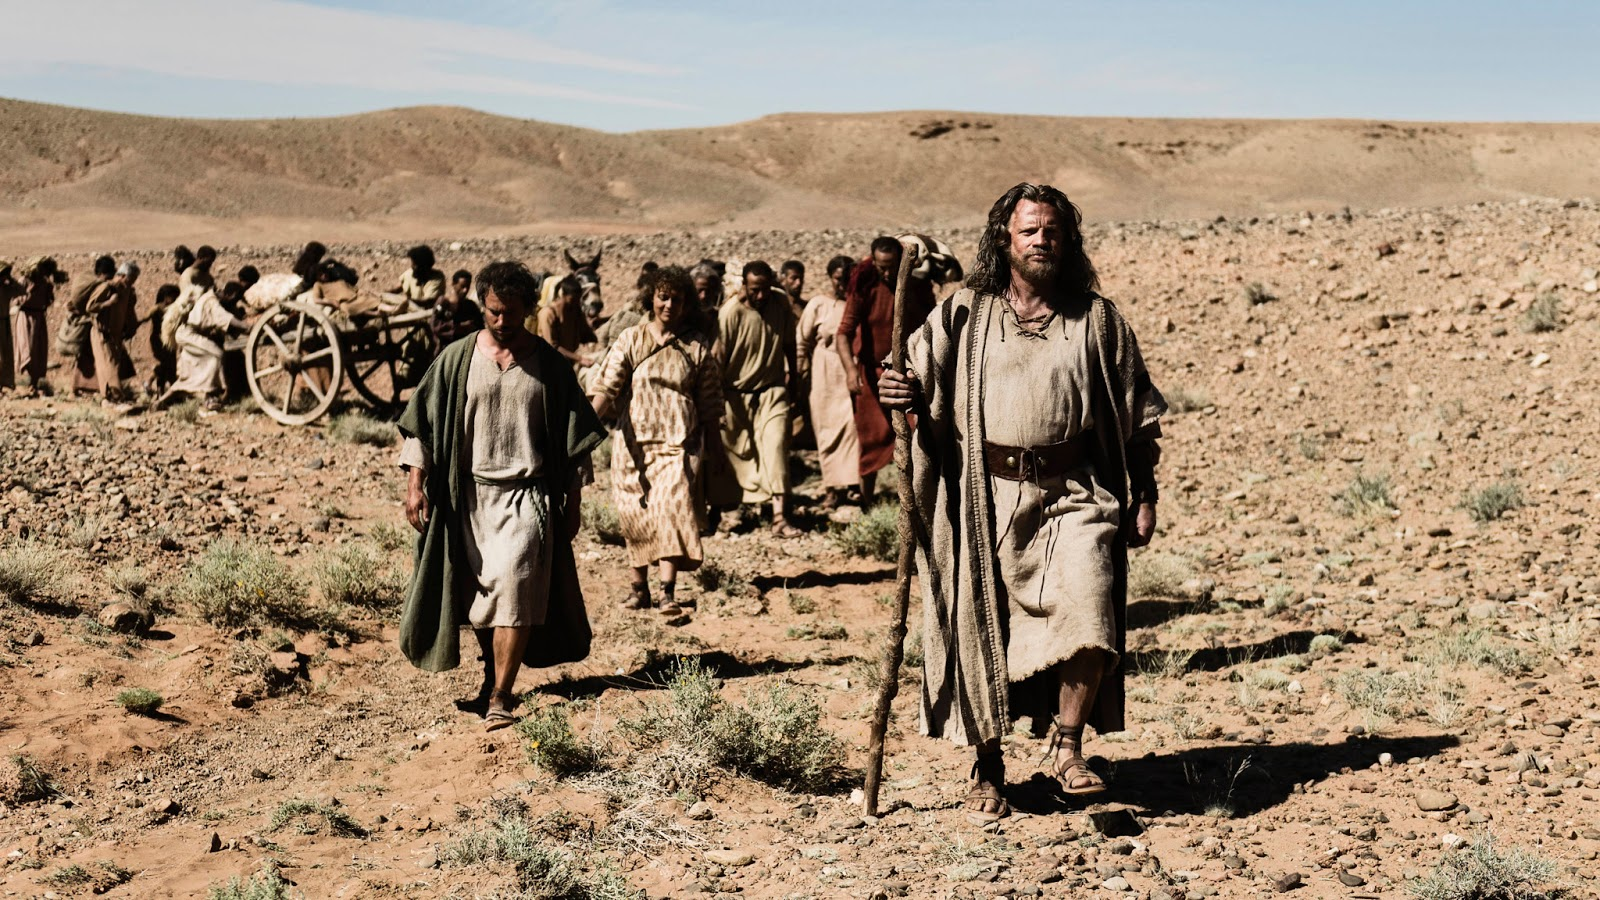 Moses_Bible_Exodus - The Bible 2013 epic miniseries screenshot